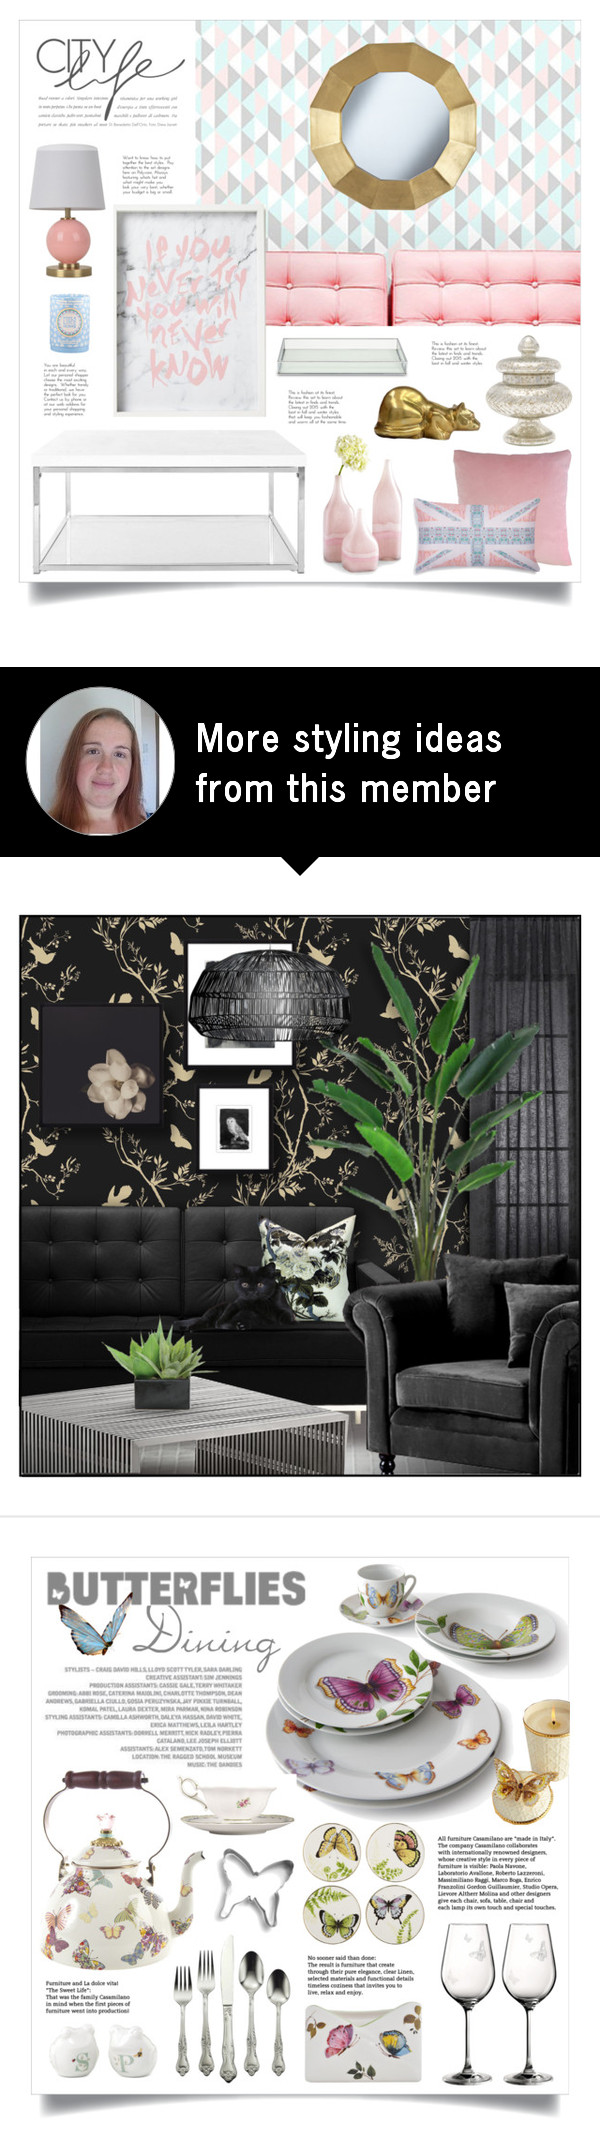 "hints of glass""retrocat1 on polyvore featuring interior"